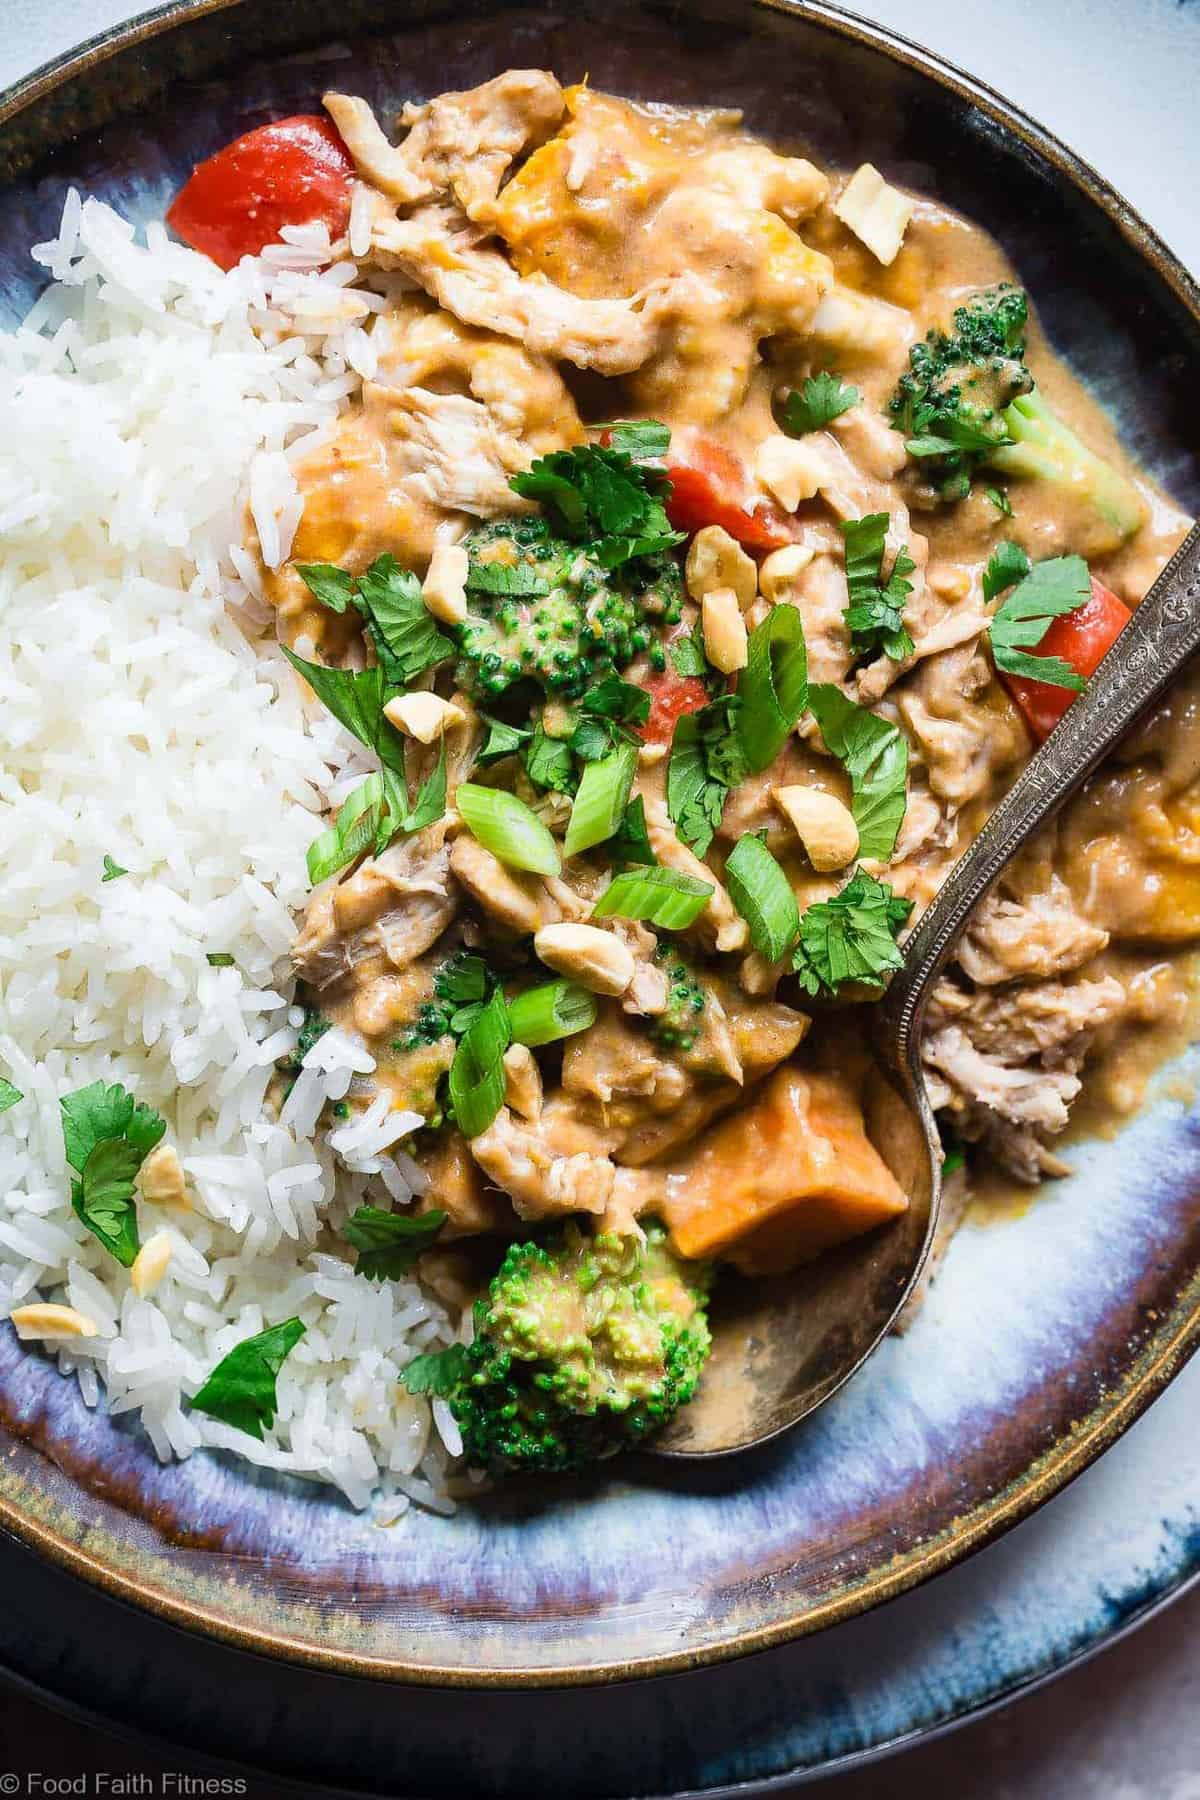 Easy Crockpot Thai Peanut Butter Chicken Curry - The slow cooker does all the work for you in this EASY, weeknight family-friendly dinner that is gluten and dairy free and packed protein. Great for meal prep too! | #Foodfaithfitness | #Glutenfree #Dairyfree #Slowcooker #Crockpot #Healthy